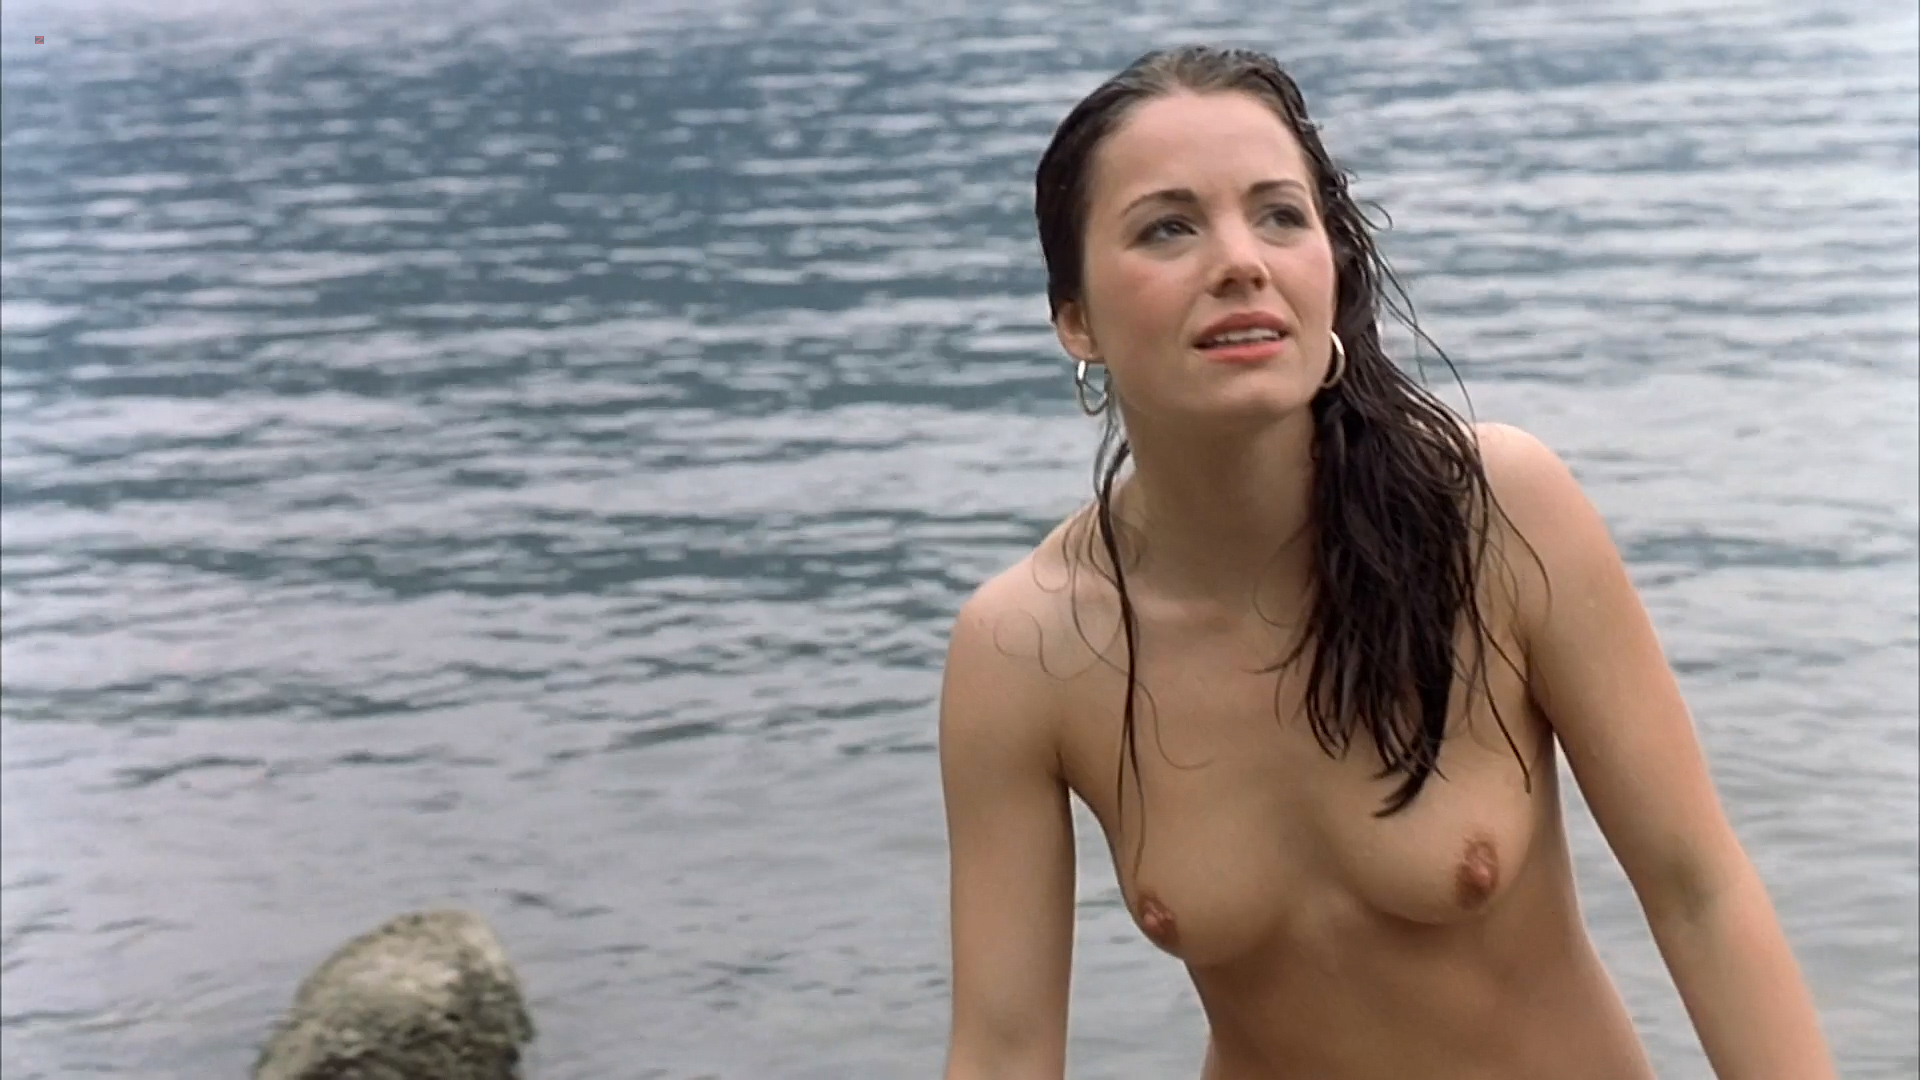 Erica durance nude was mistake